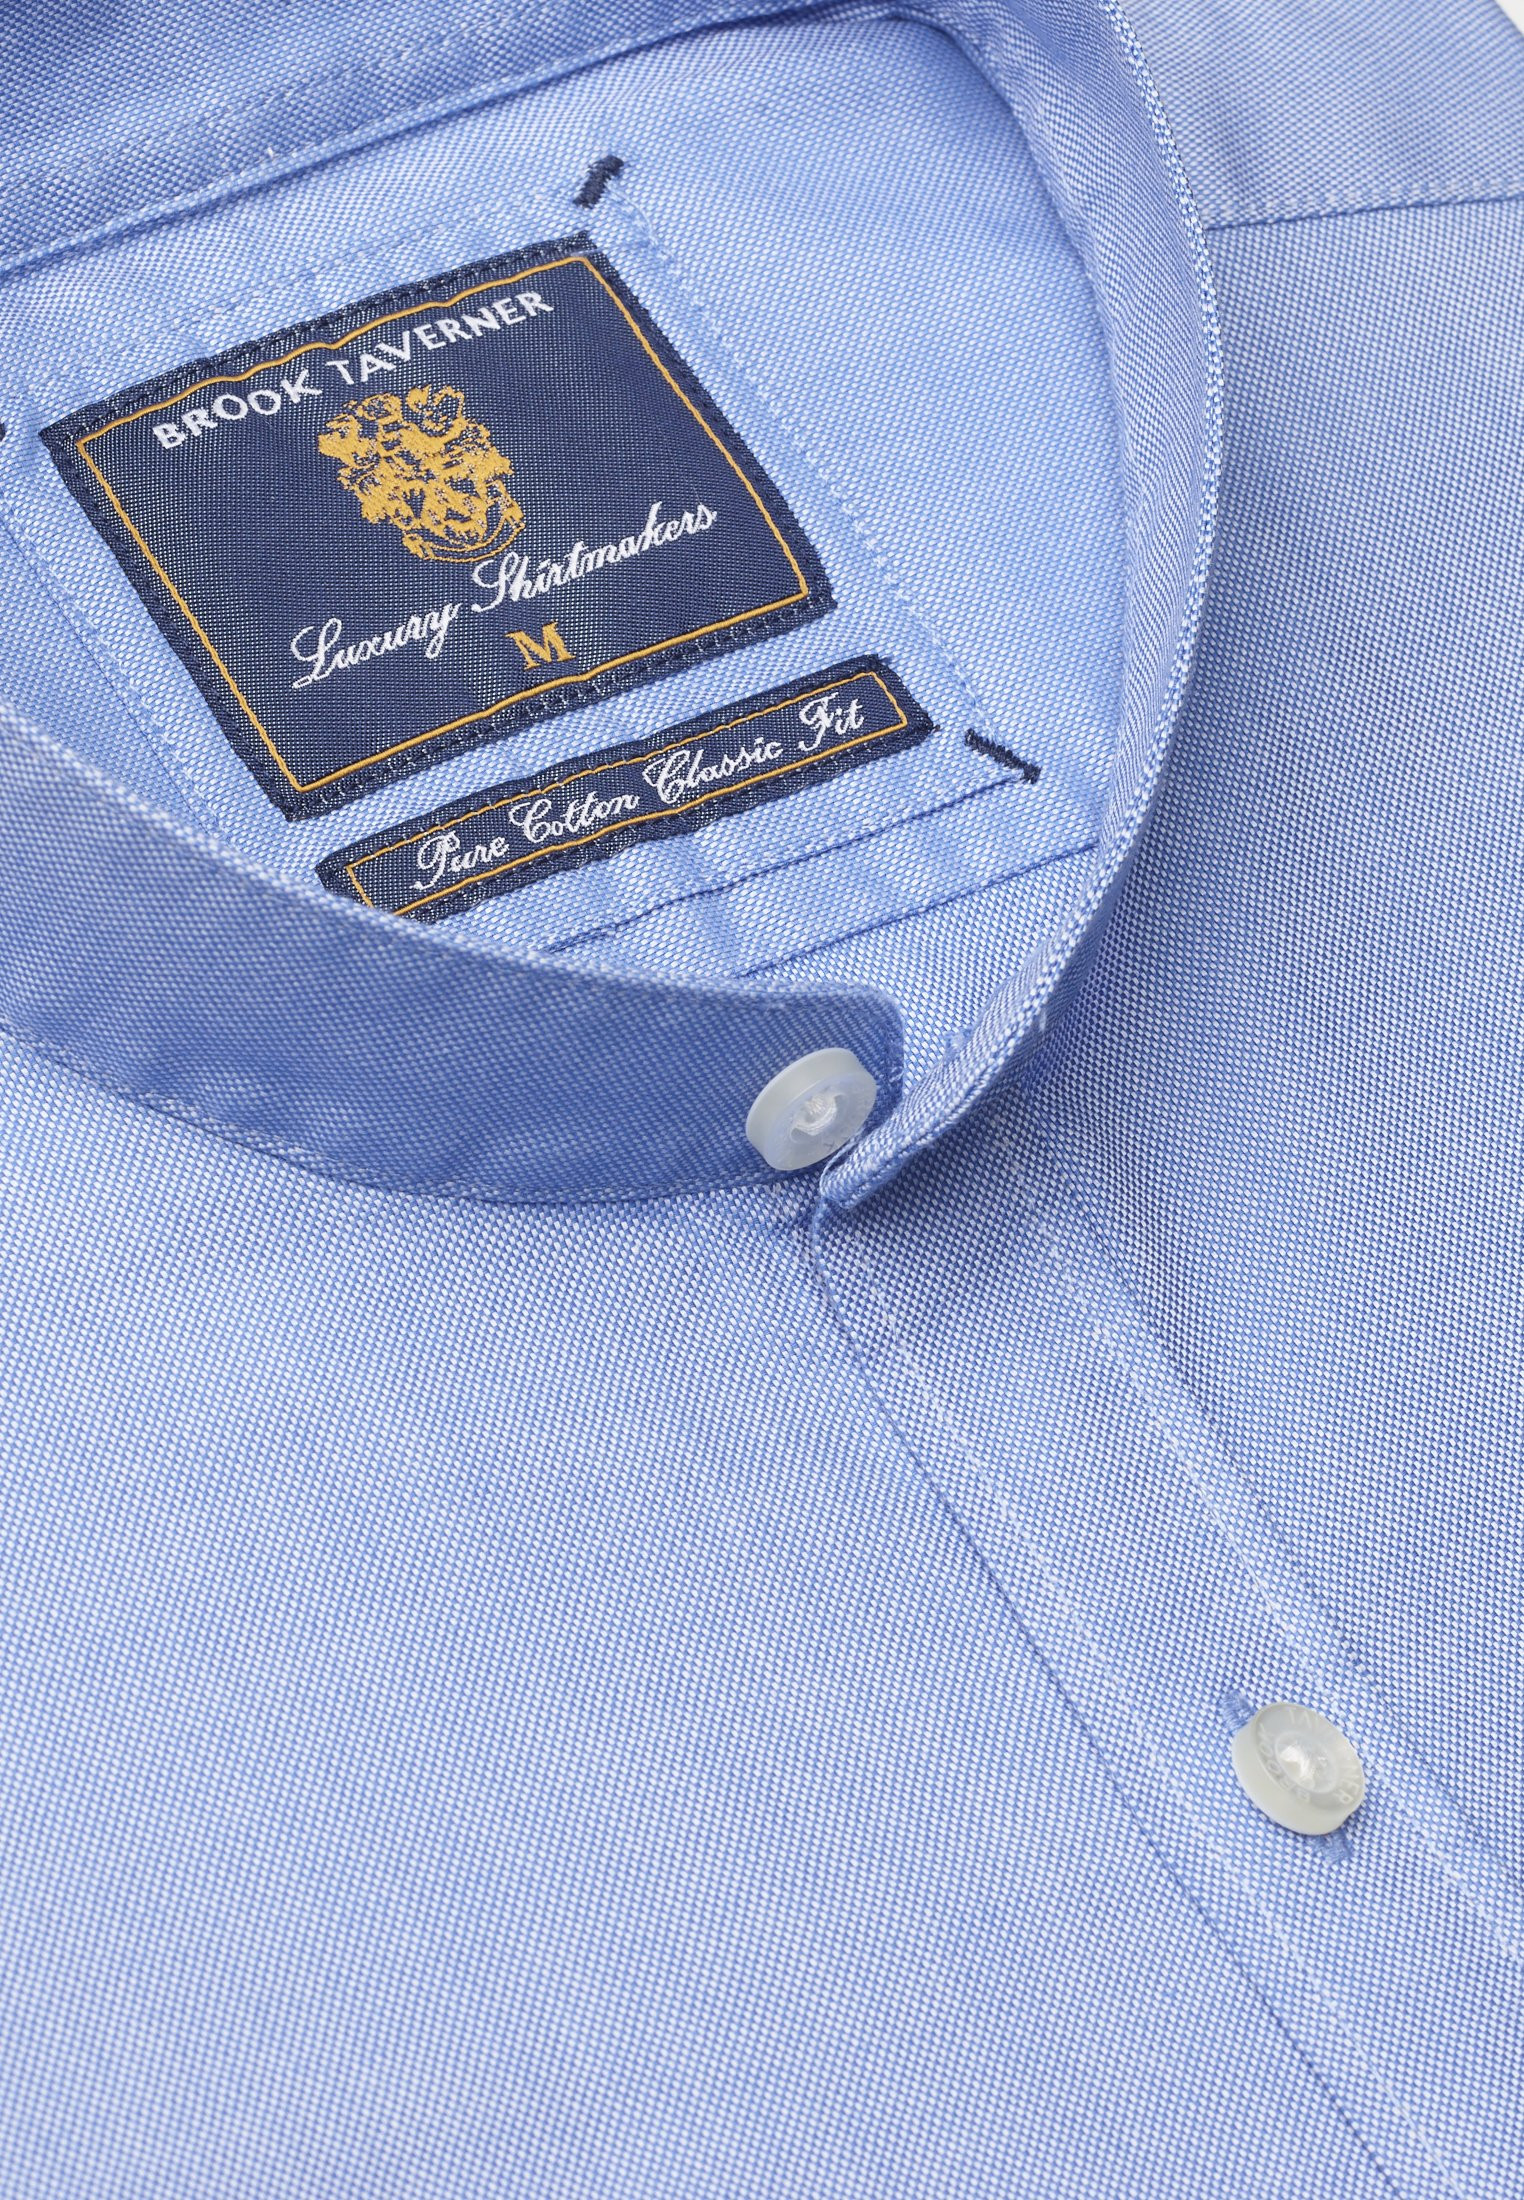 Classic and Tailored Fit Grandad Collar Long Sleeve Blue Oxford Shirt